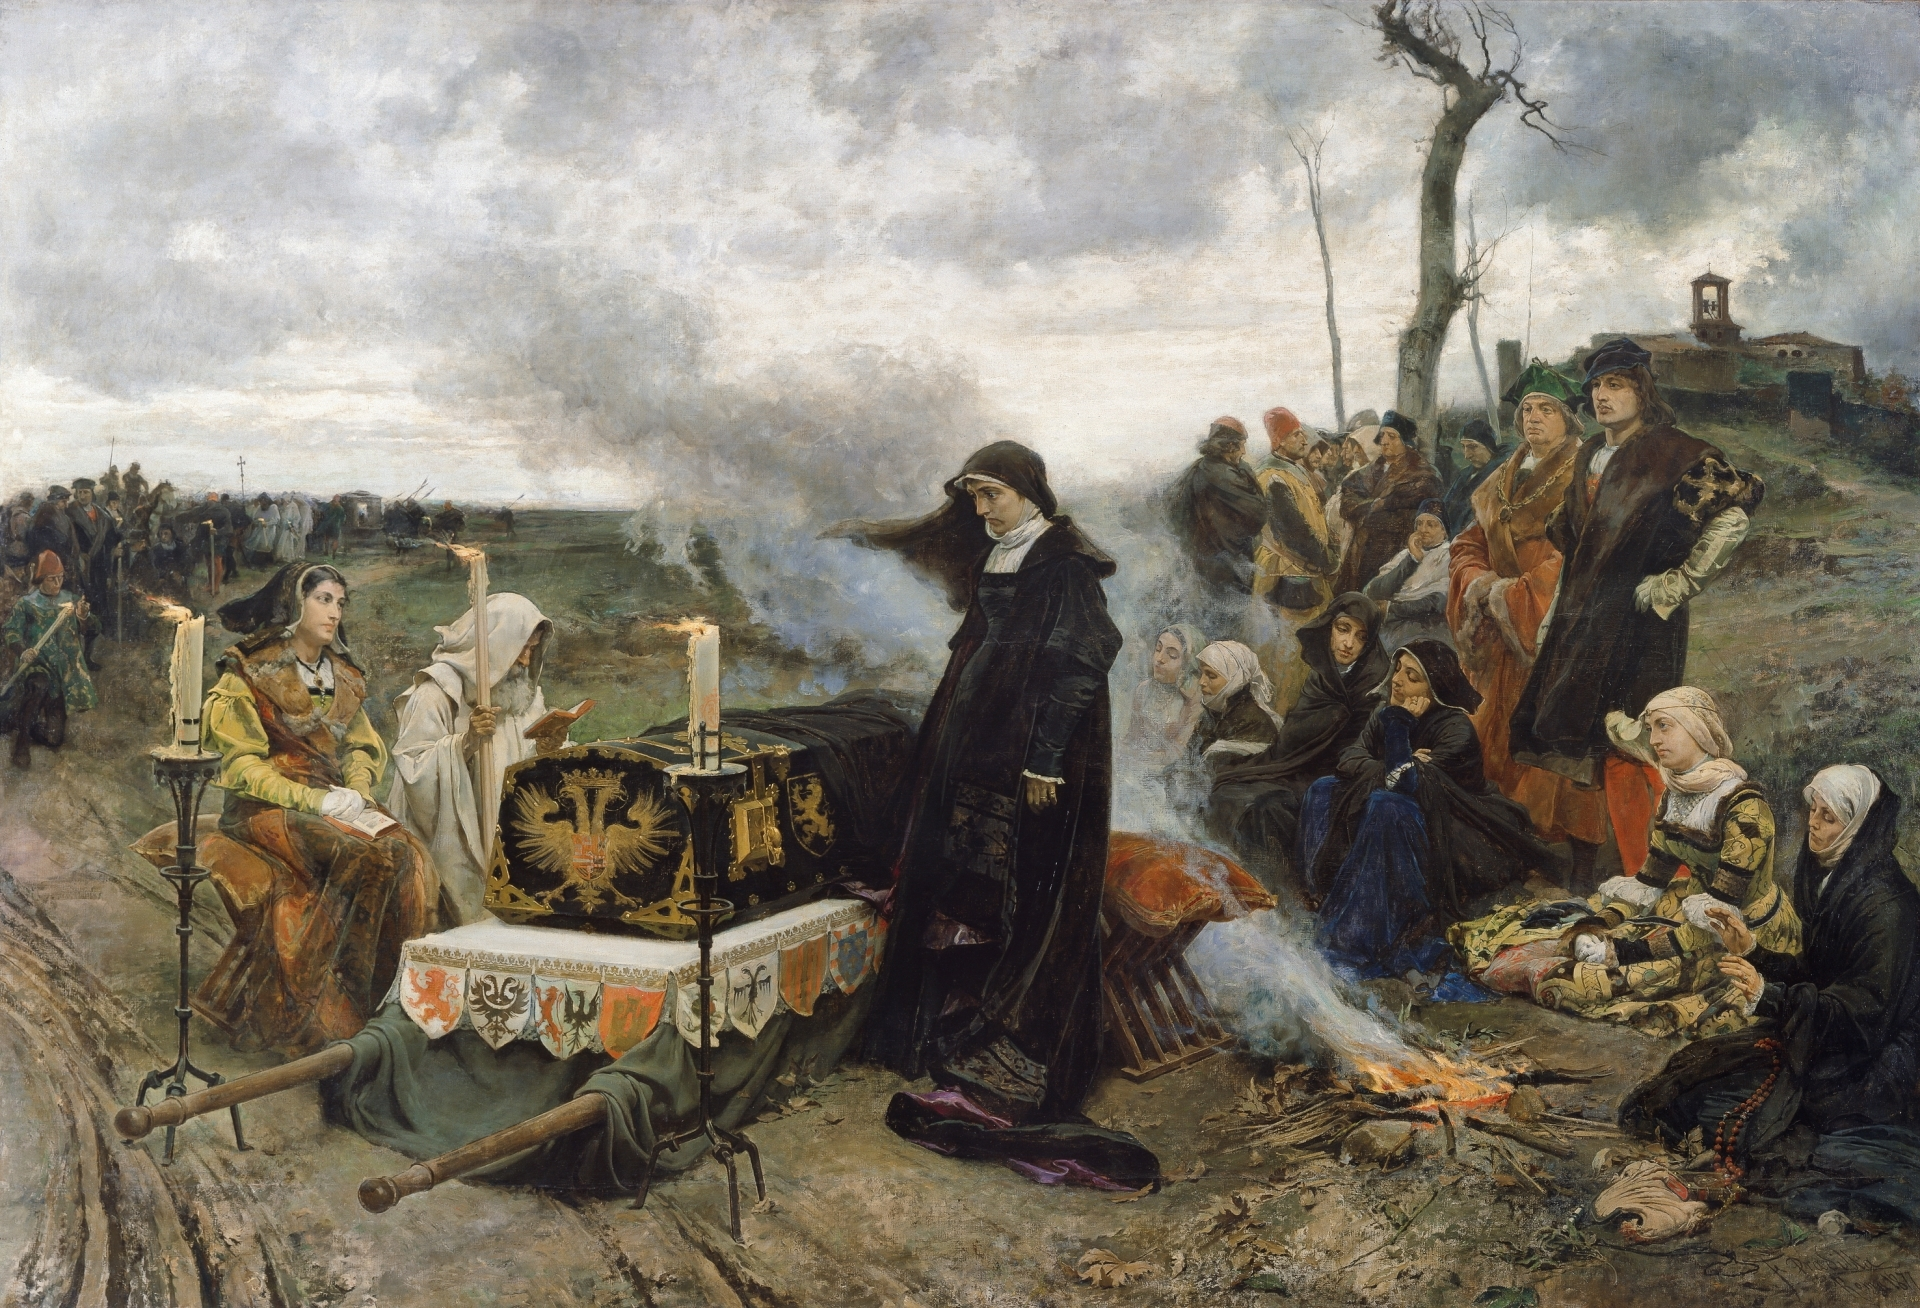 XIX century painting - The Collection - Museo Nacional del Prado